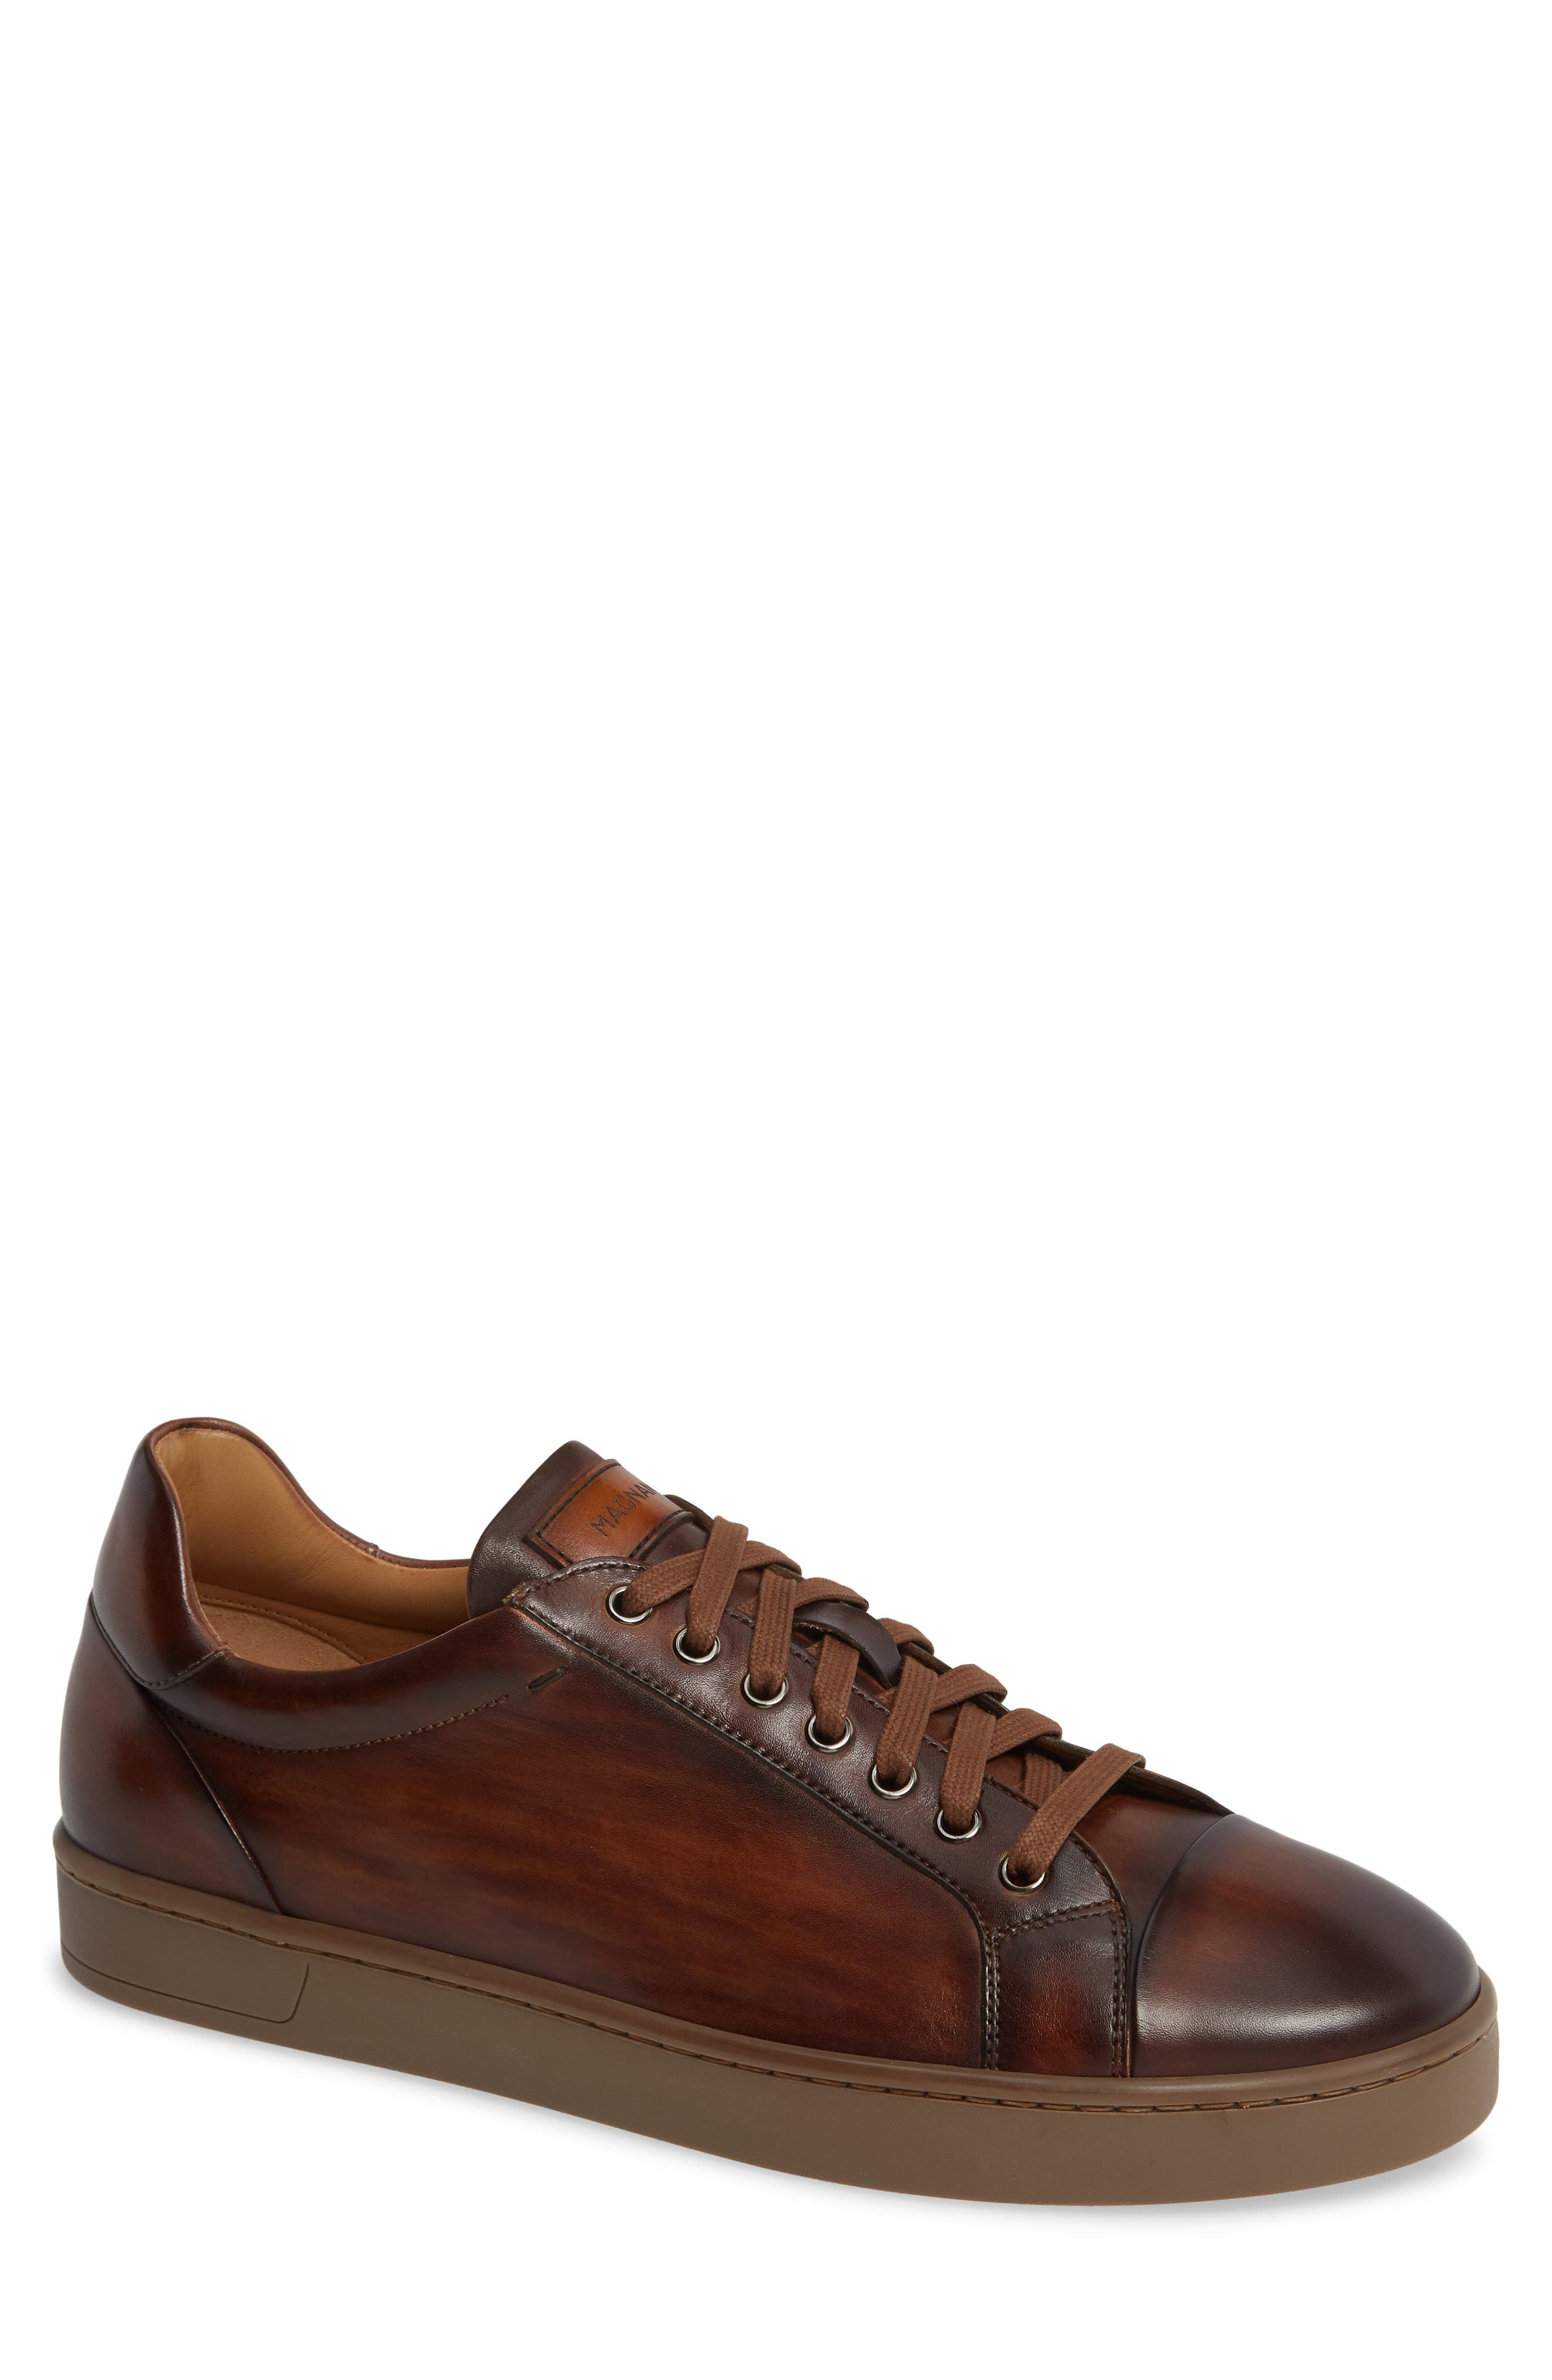 Caitin Sneaker,                             Main thumbnail 1, color,                             TABACO LEATHER